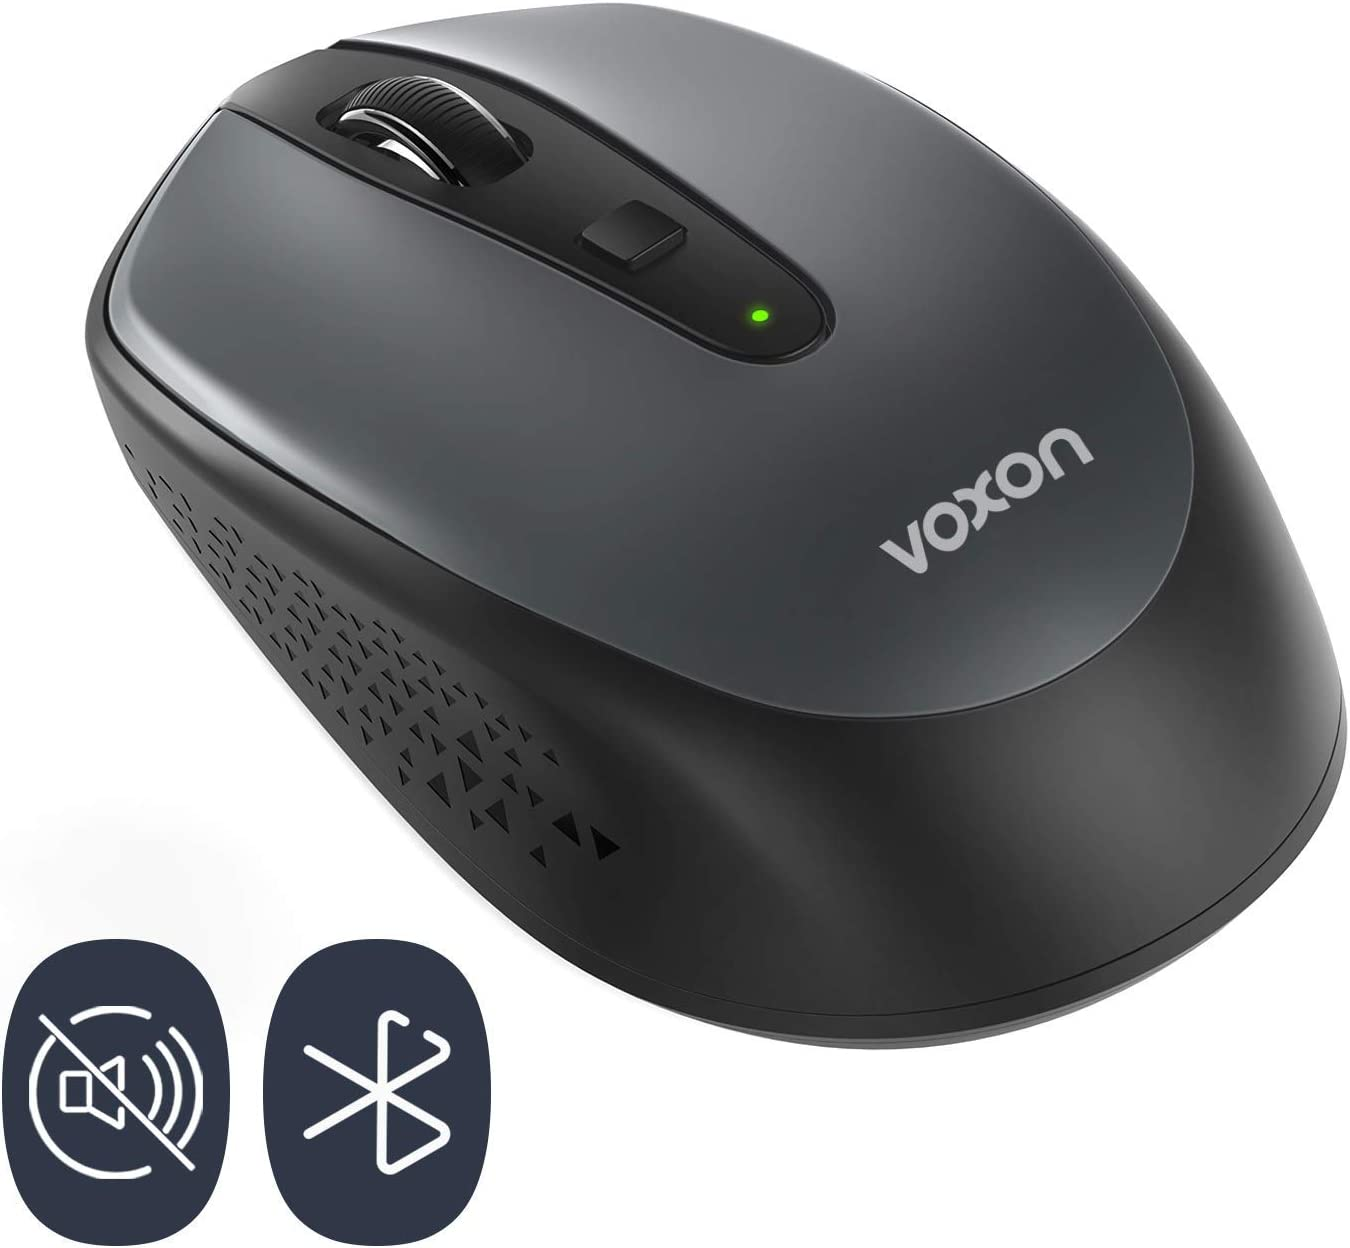 VOXON Small Portable Bluetooth Wireless Mouse ,18 Months Battery Life with Noiseless Click, 3 Adjustable DPI Levels: 1600/1200/800DPI